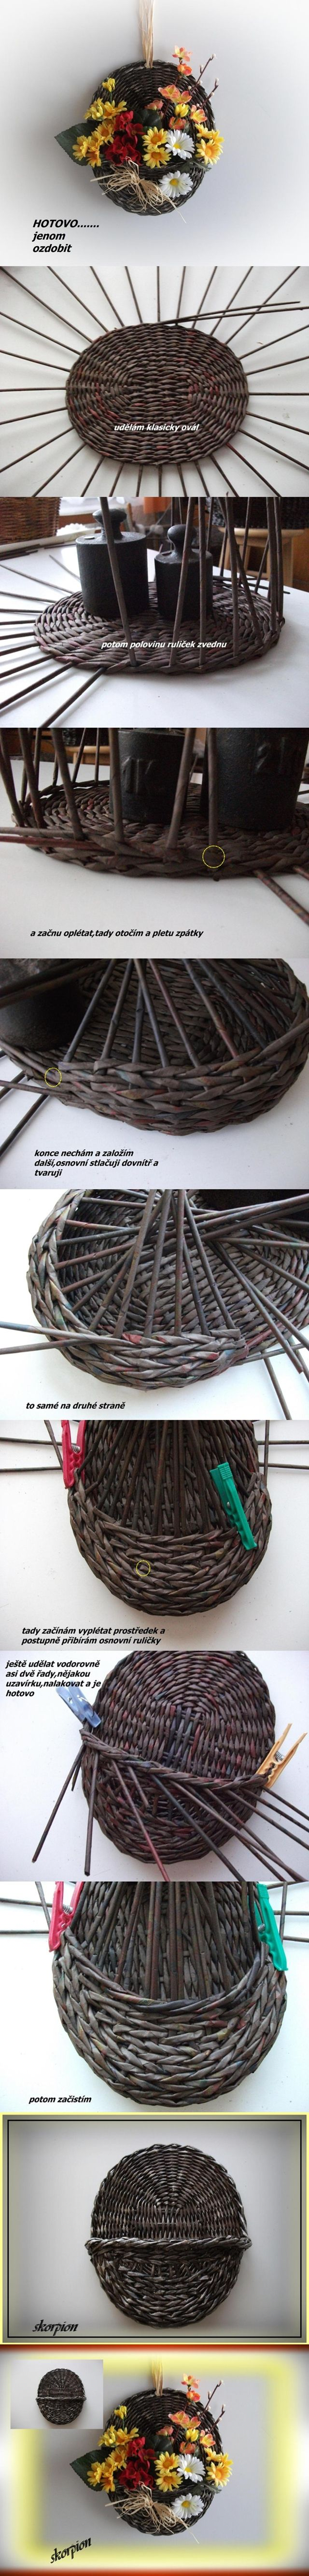 DIY Woven Hanger Planter from Newspaper | www.FabArtDIY.com LIKE Us on Facebook ==> https://www.facebook.com/FabArtDIY